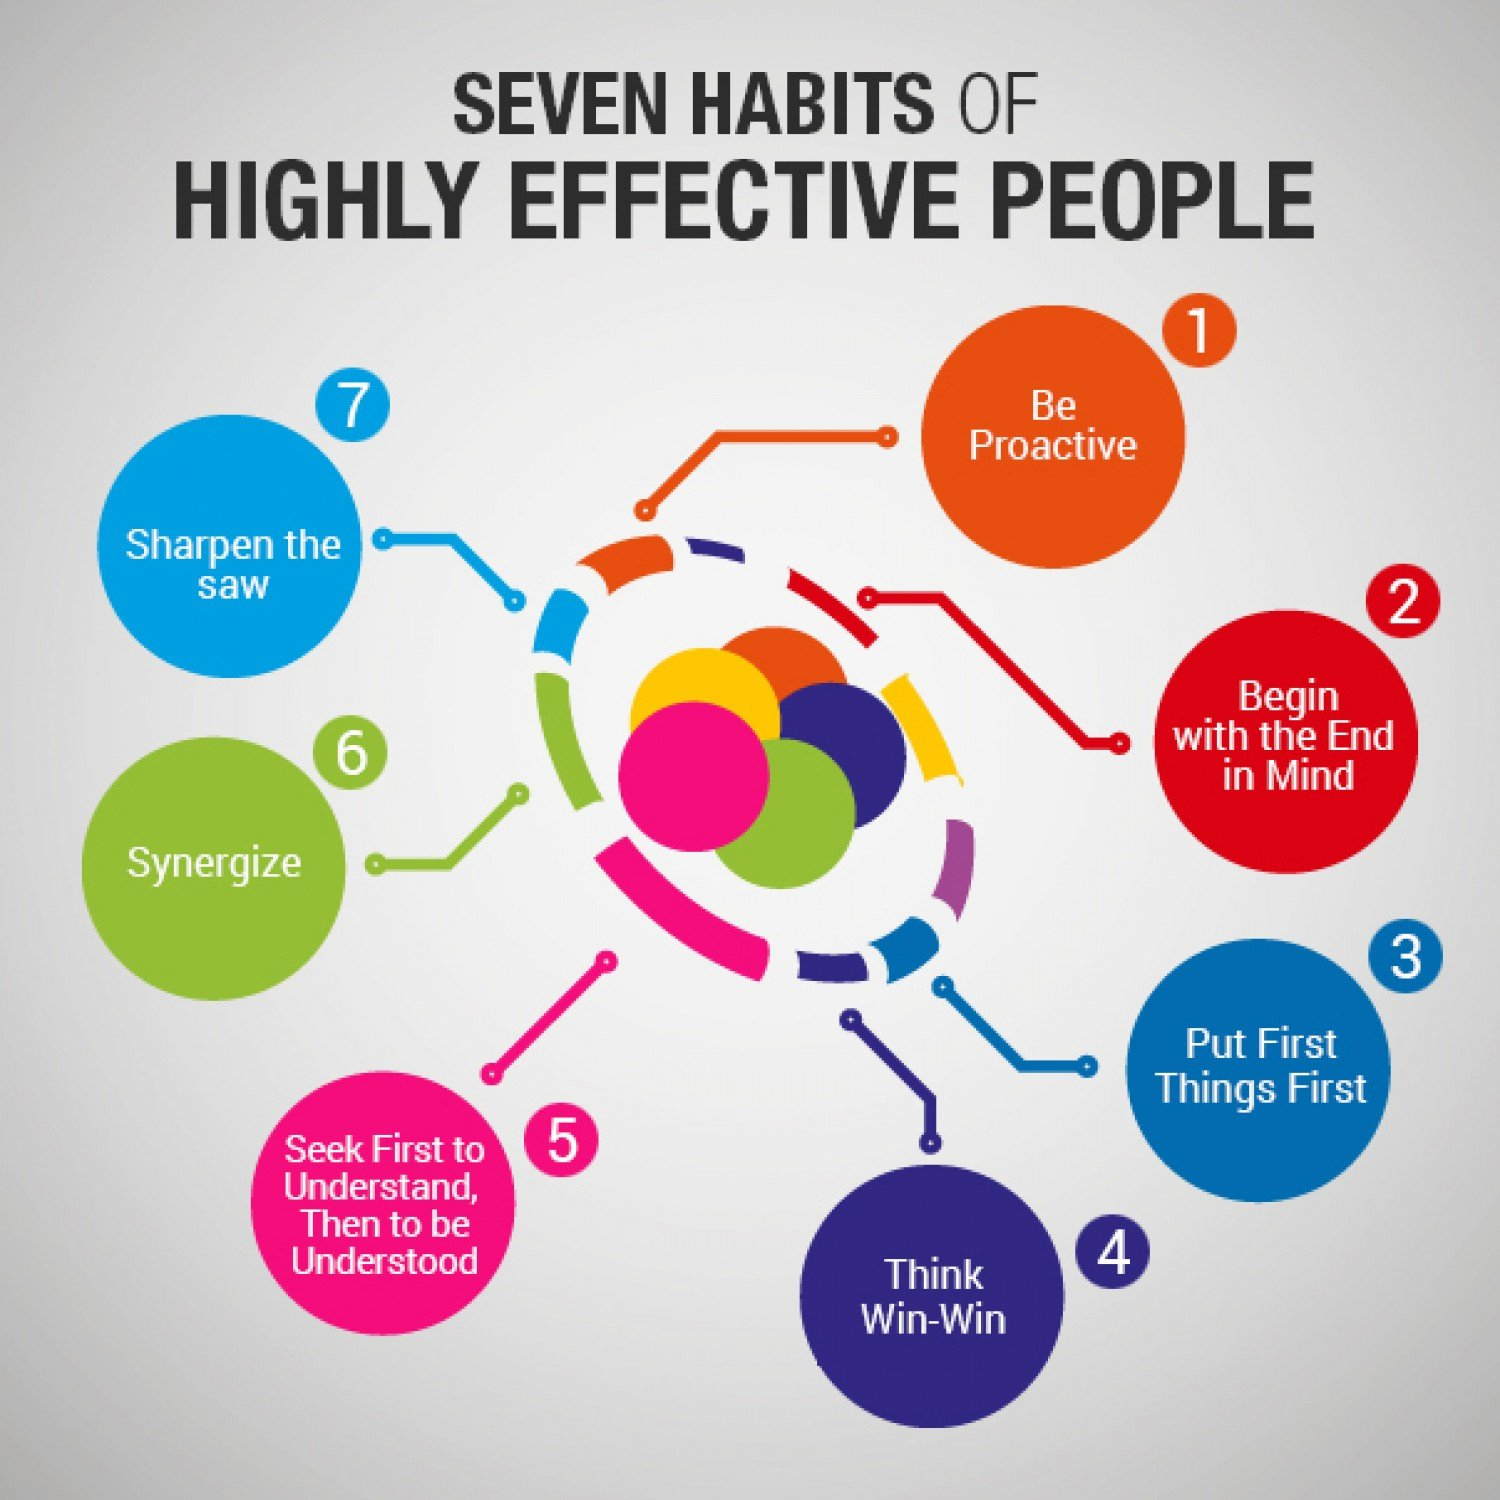 the 7 habits of highly effective The 7 habits of highly effective people pdf summary by stephen r covey promotes this business bestseller, enriched with facts fueling your passion takes more than just skills, it requires determination and good organization.